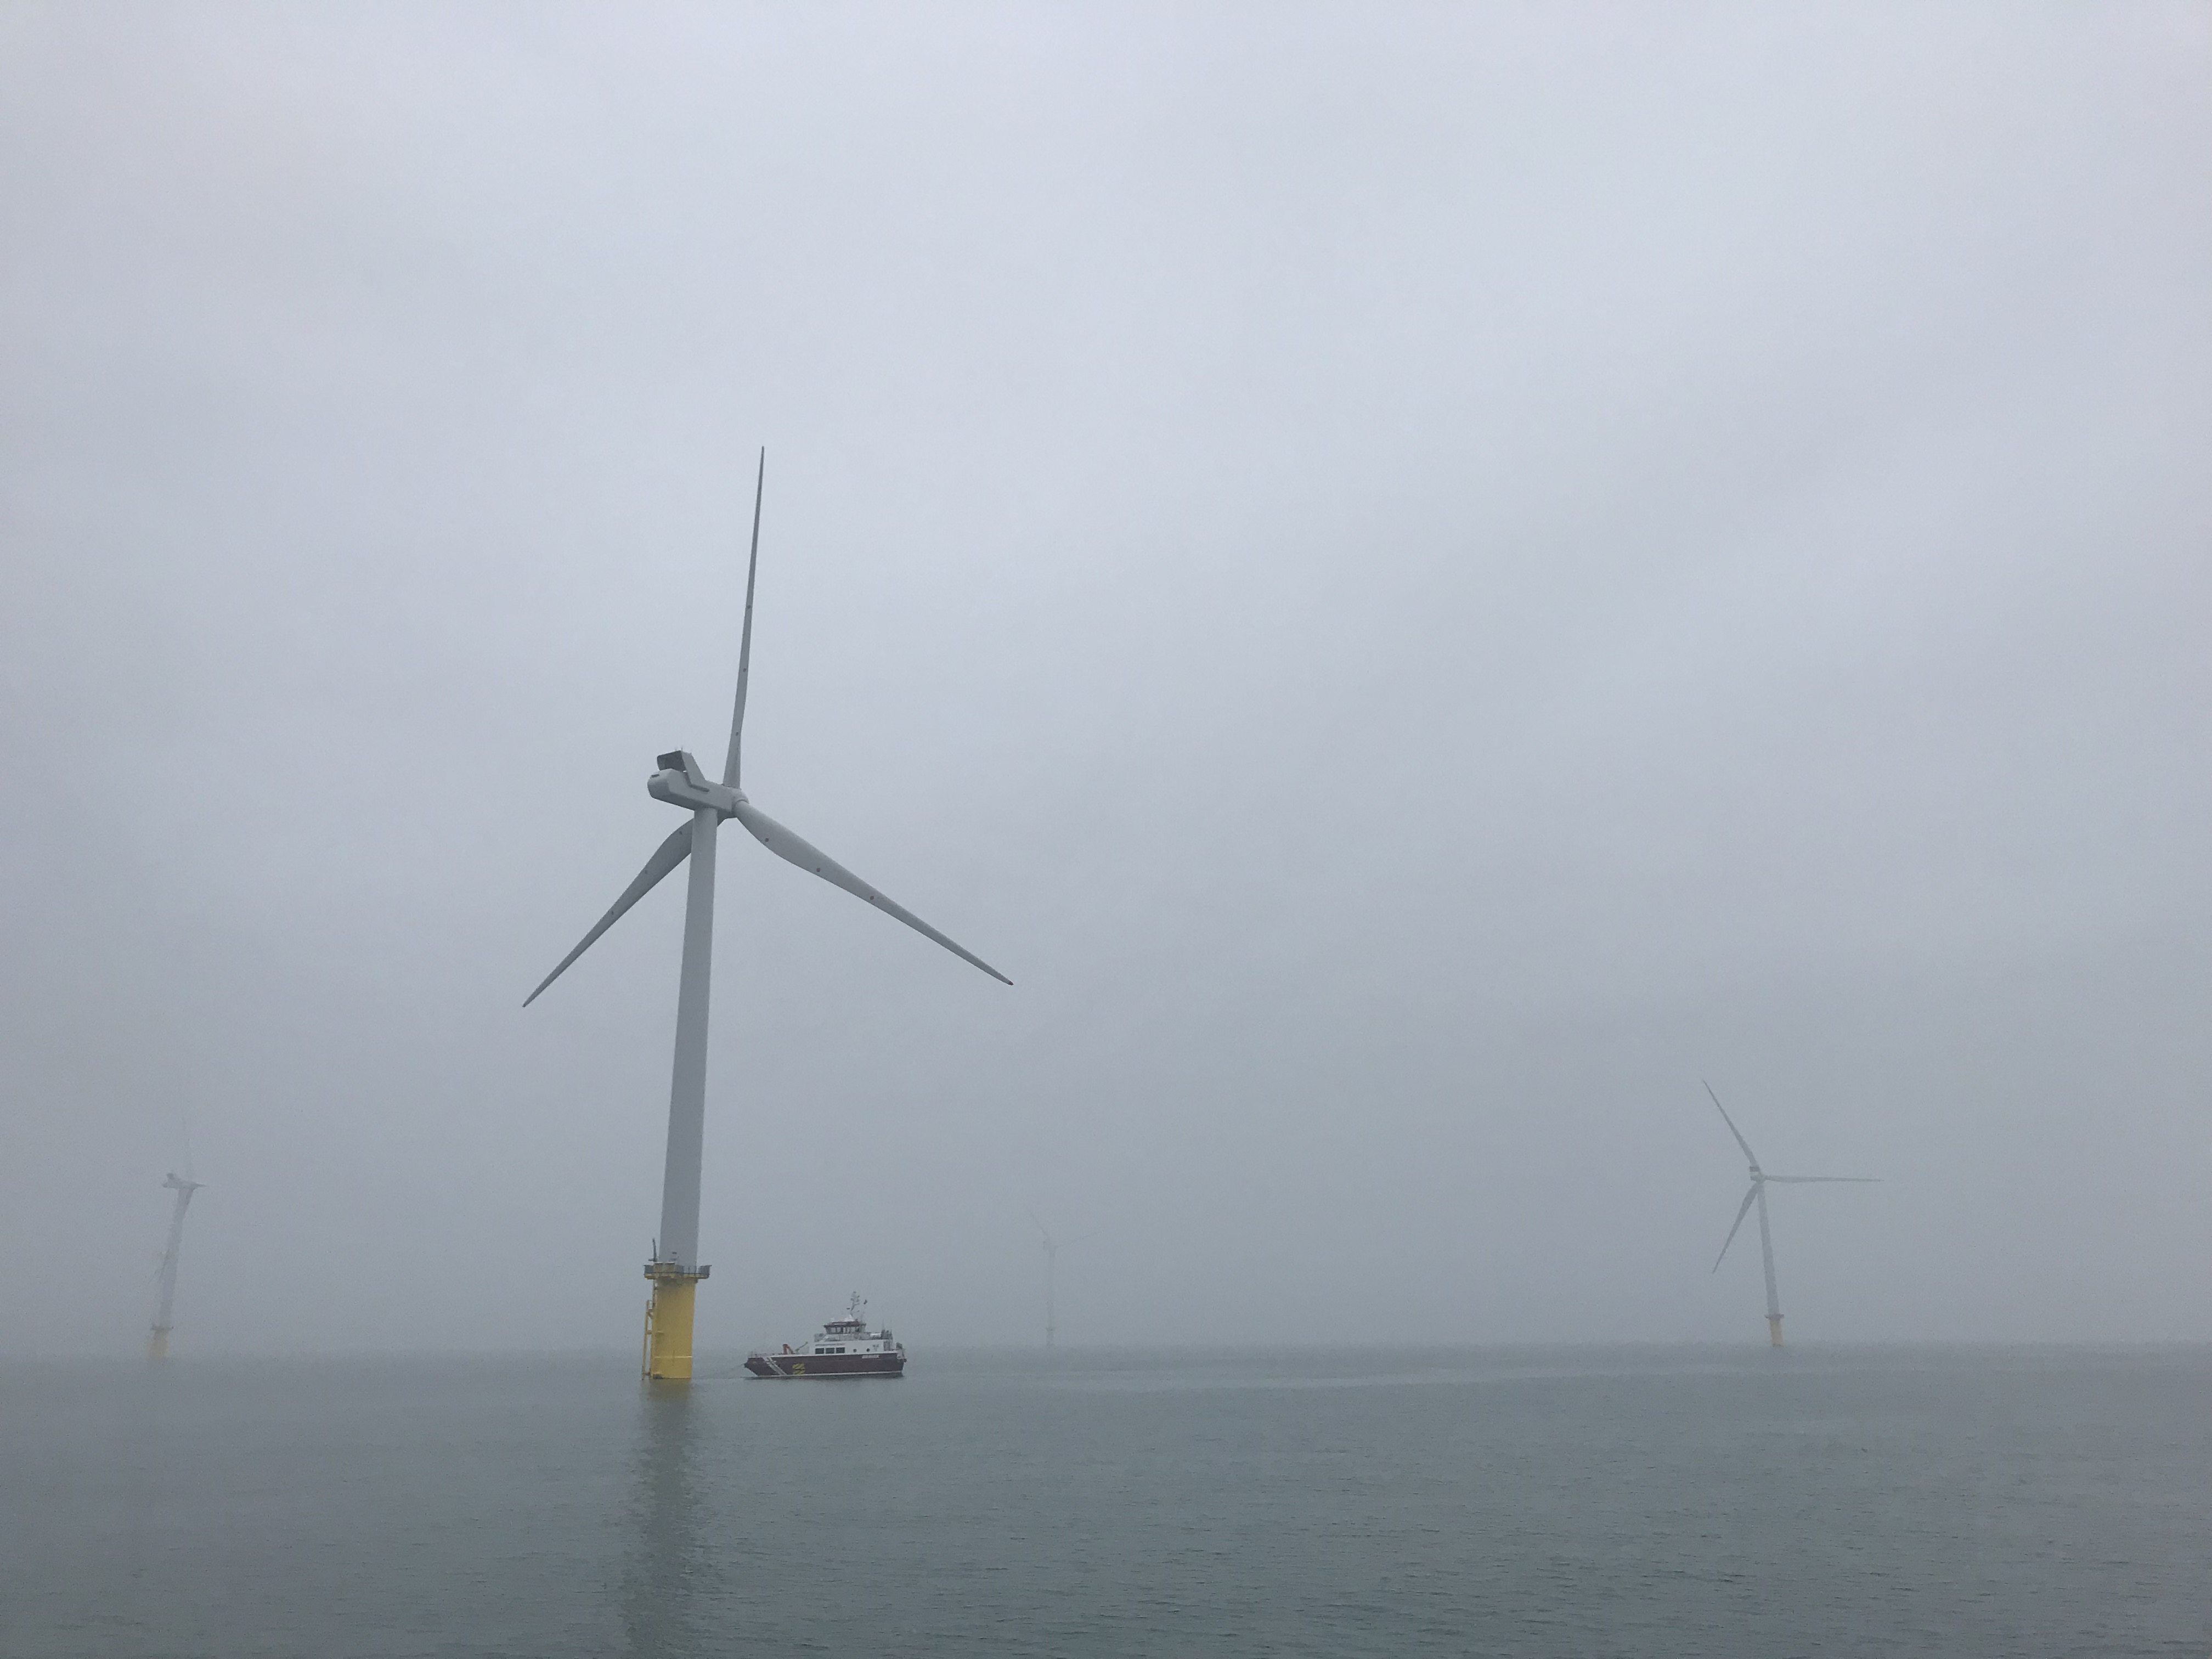 Rampion wind farm turbine